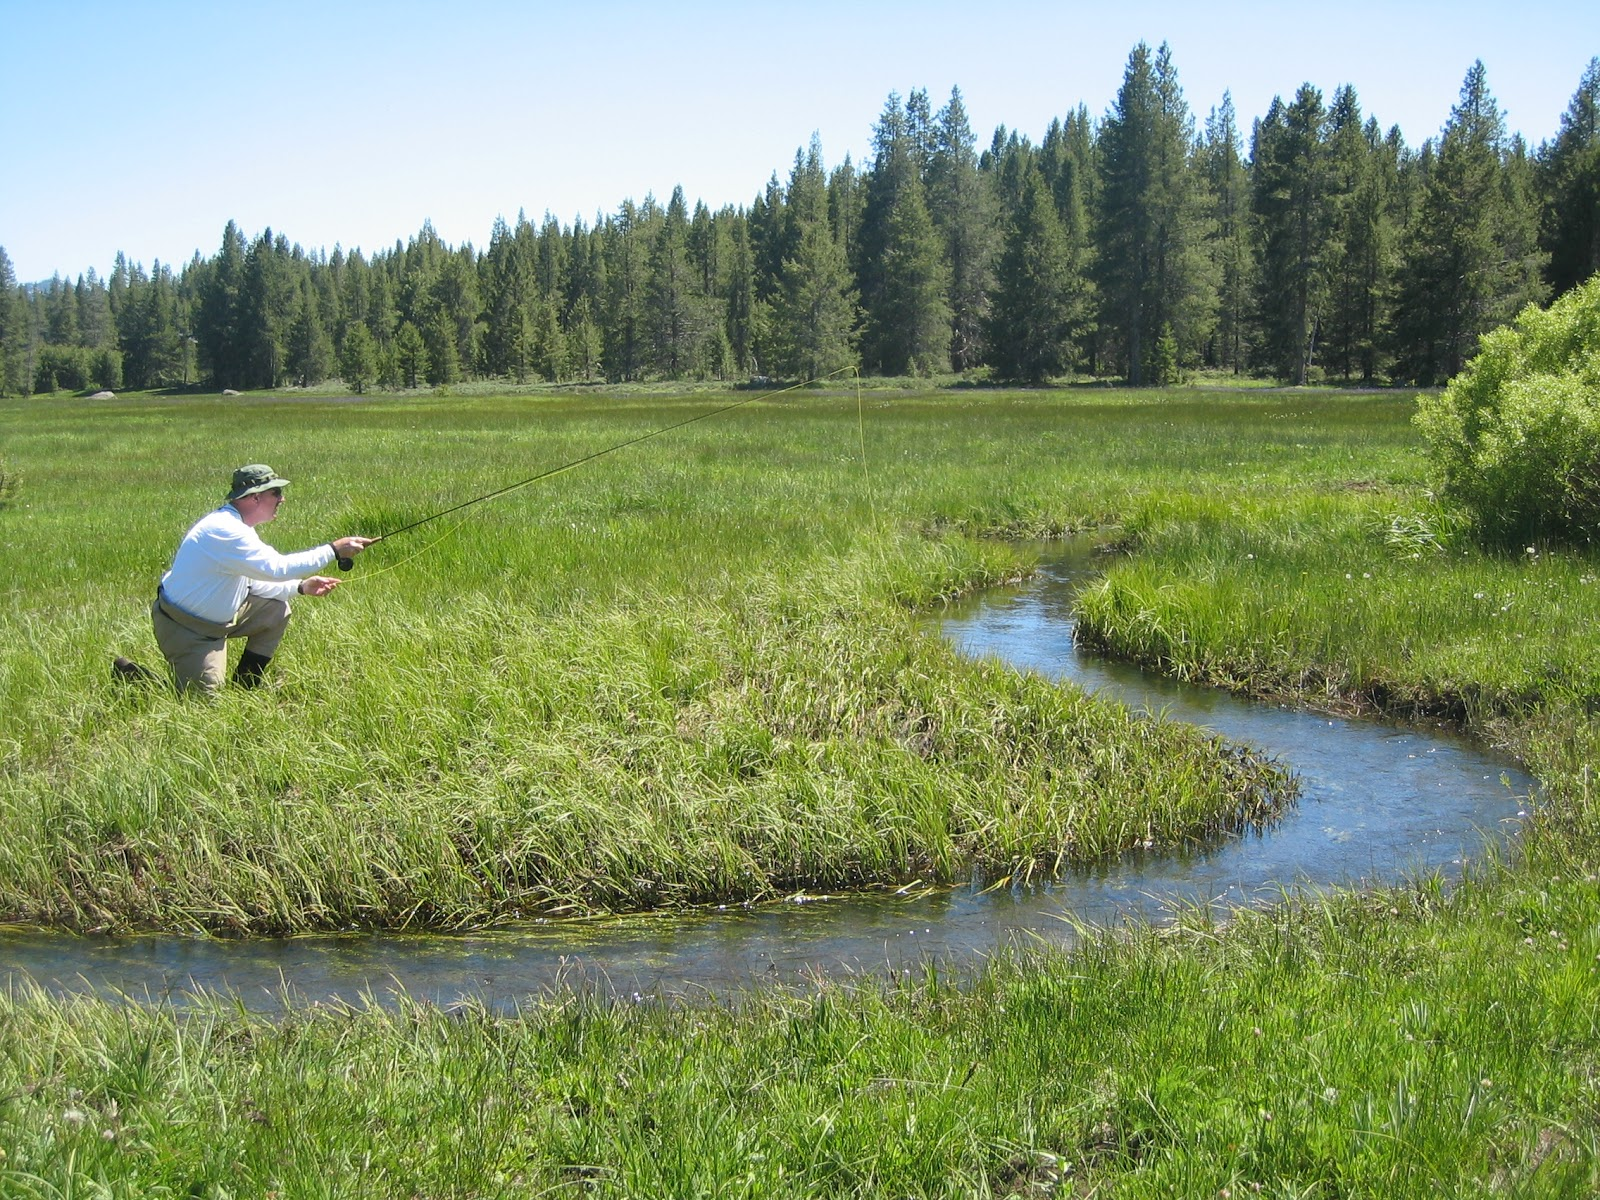 California Fly Fishing Spring Fly Fishing Options Other